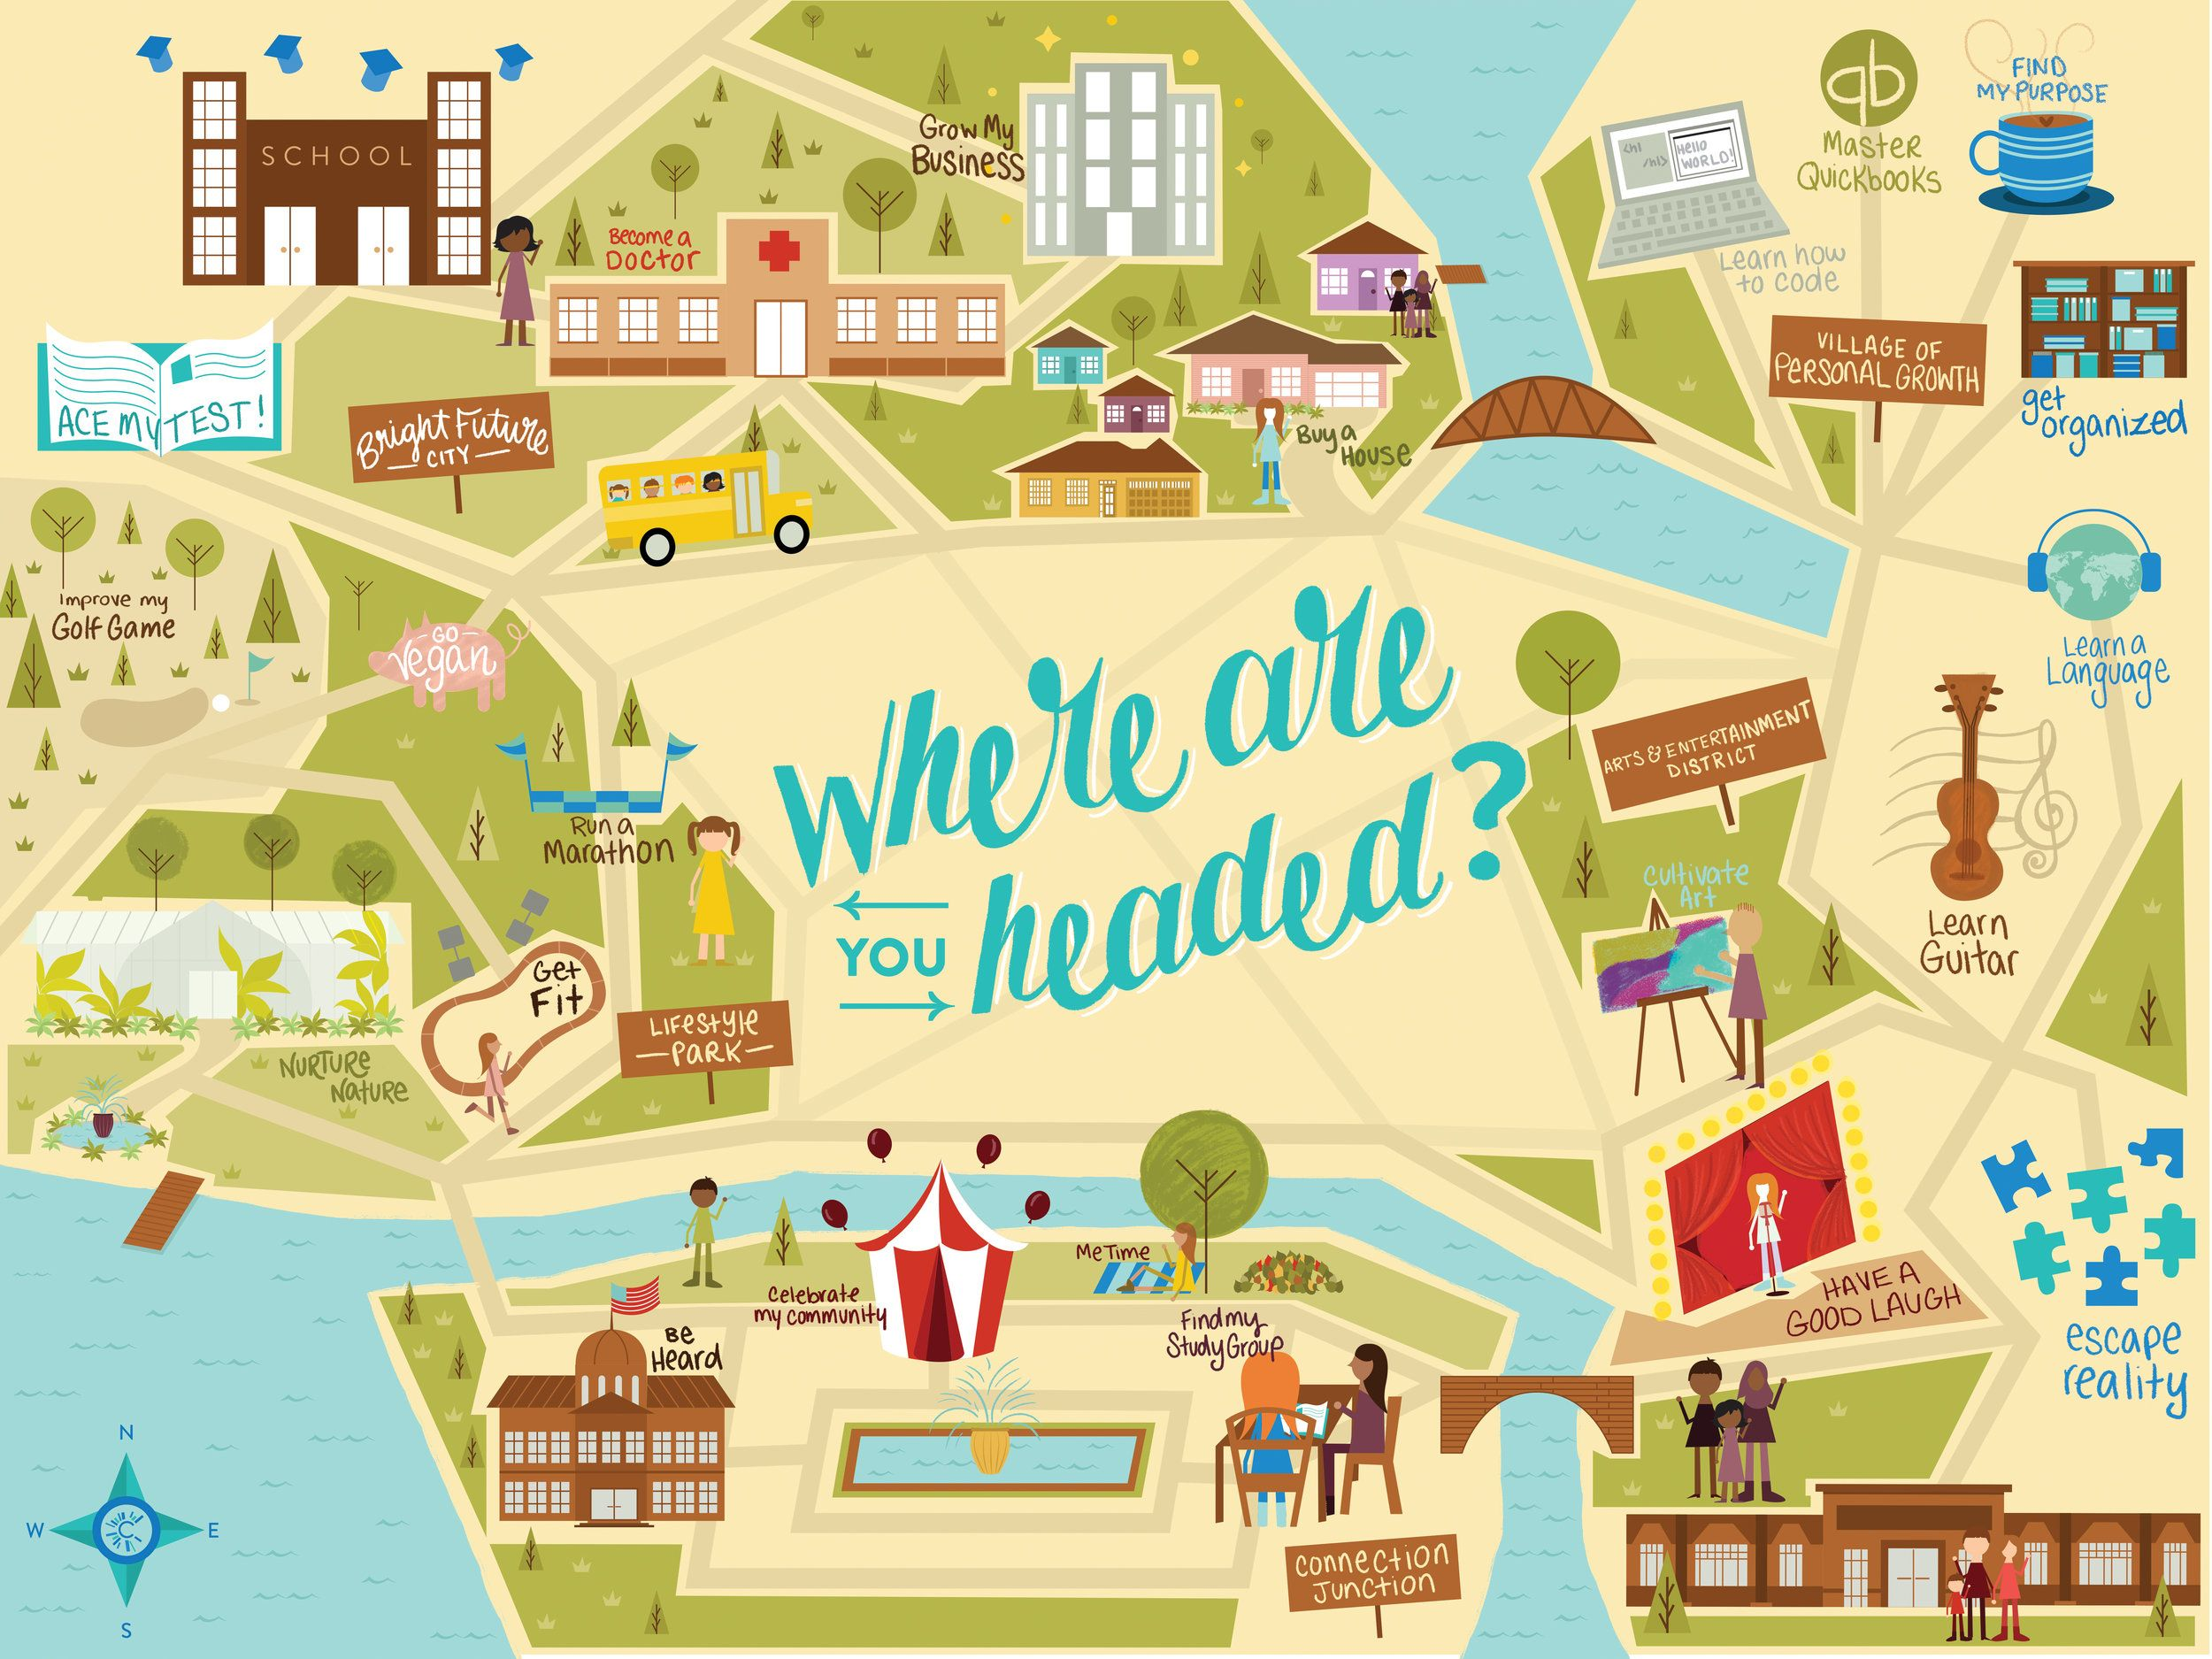 Where Are You Headed Map Design To Help Communicate Canton Public